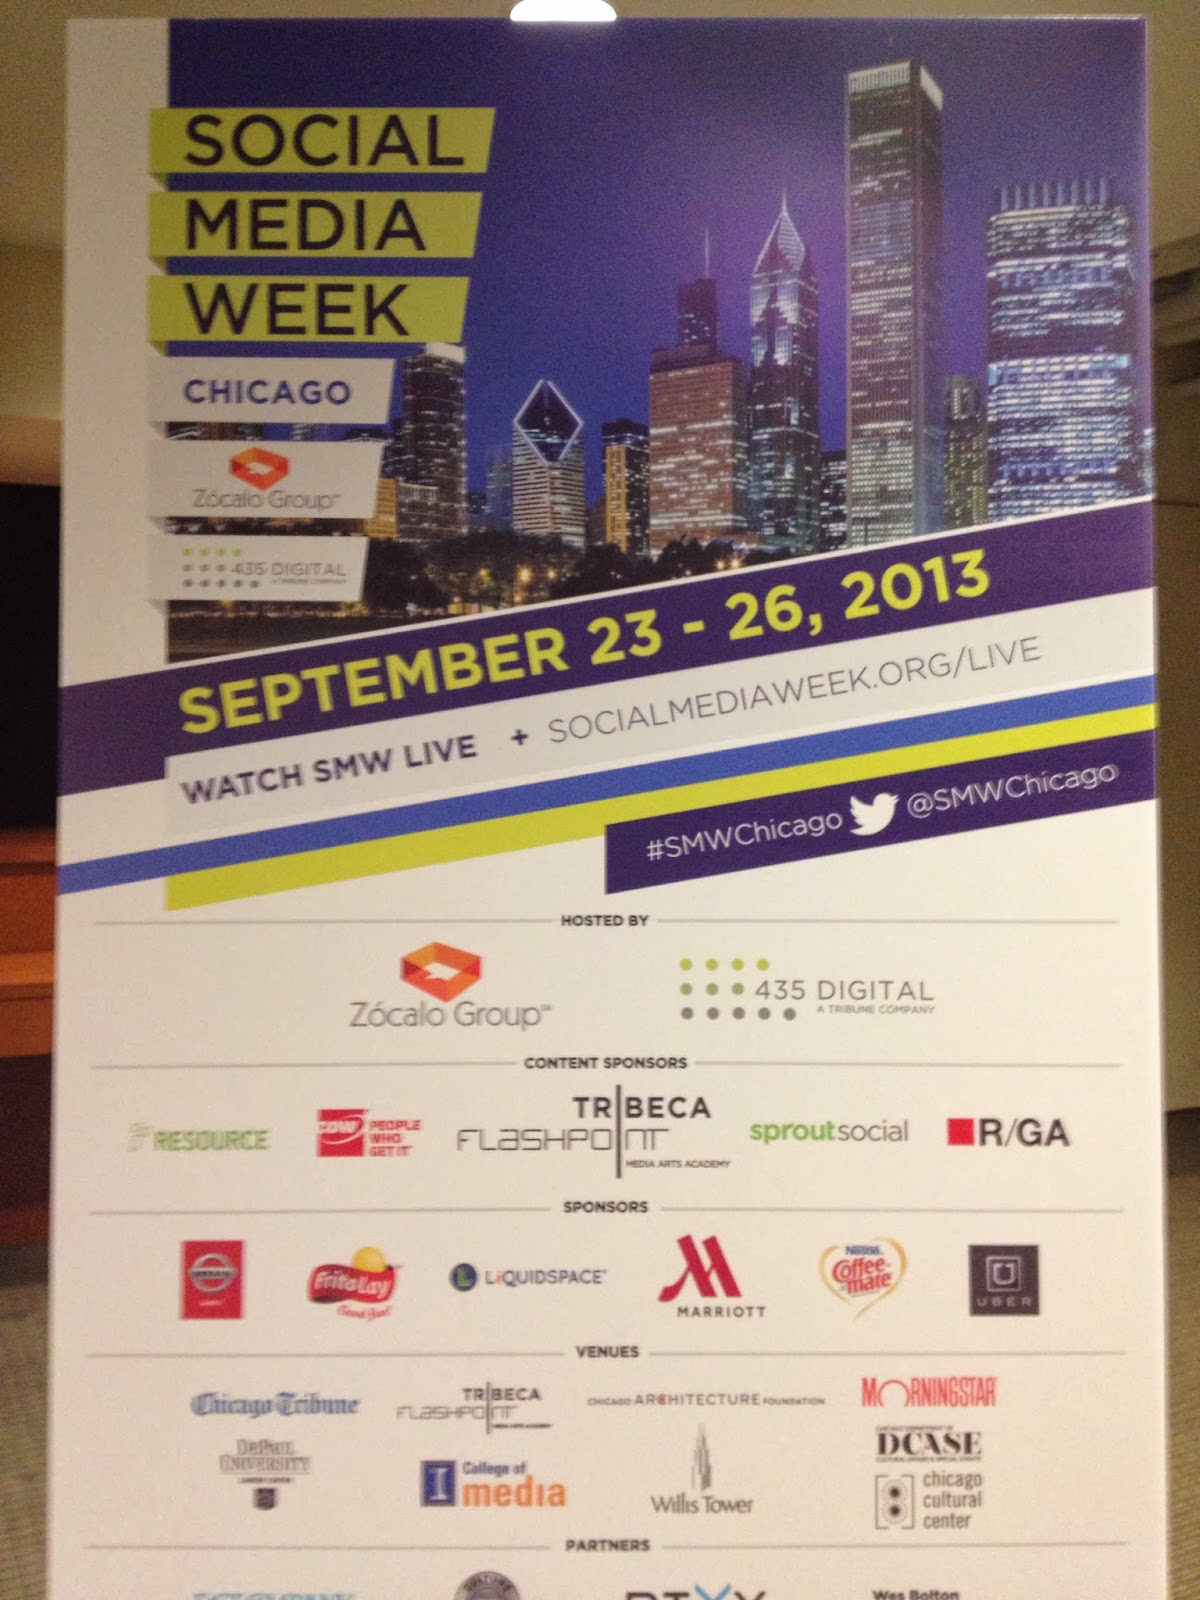 Social Media Week Chicago September 23- 26, 2013